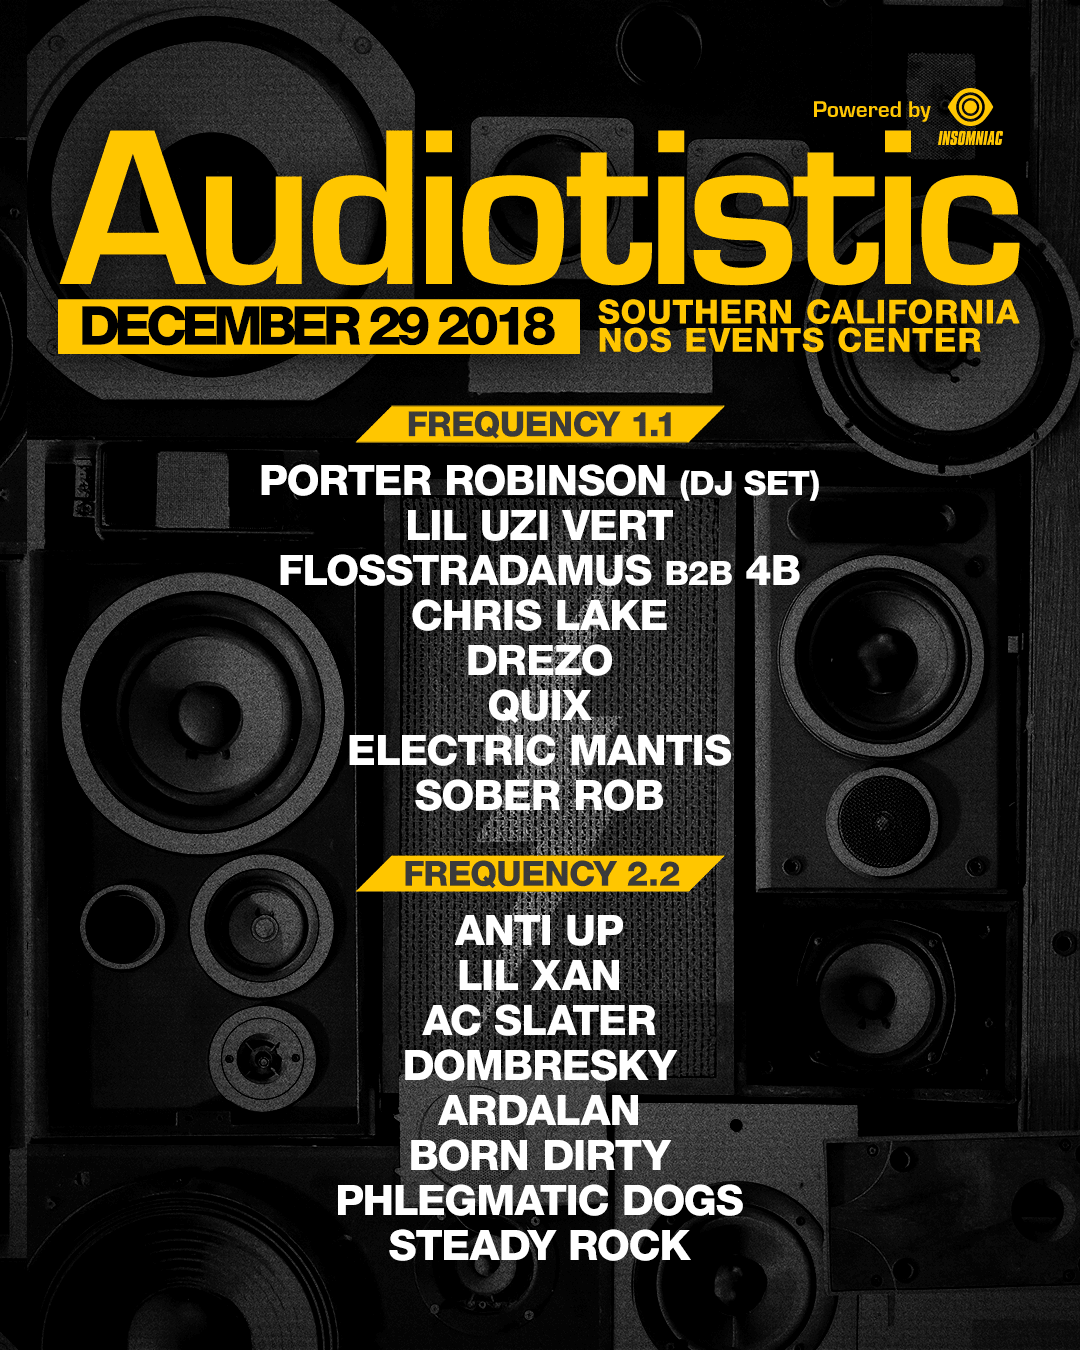 Audiotistic Socal 2018 Lineup!